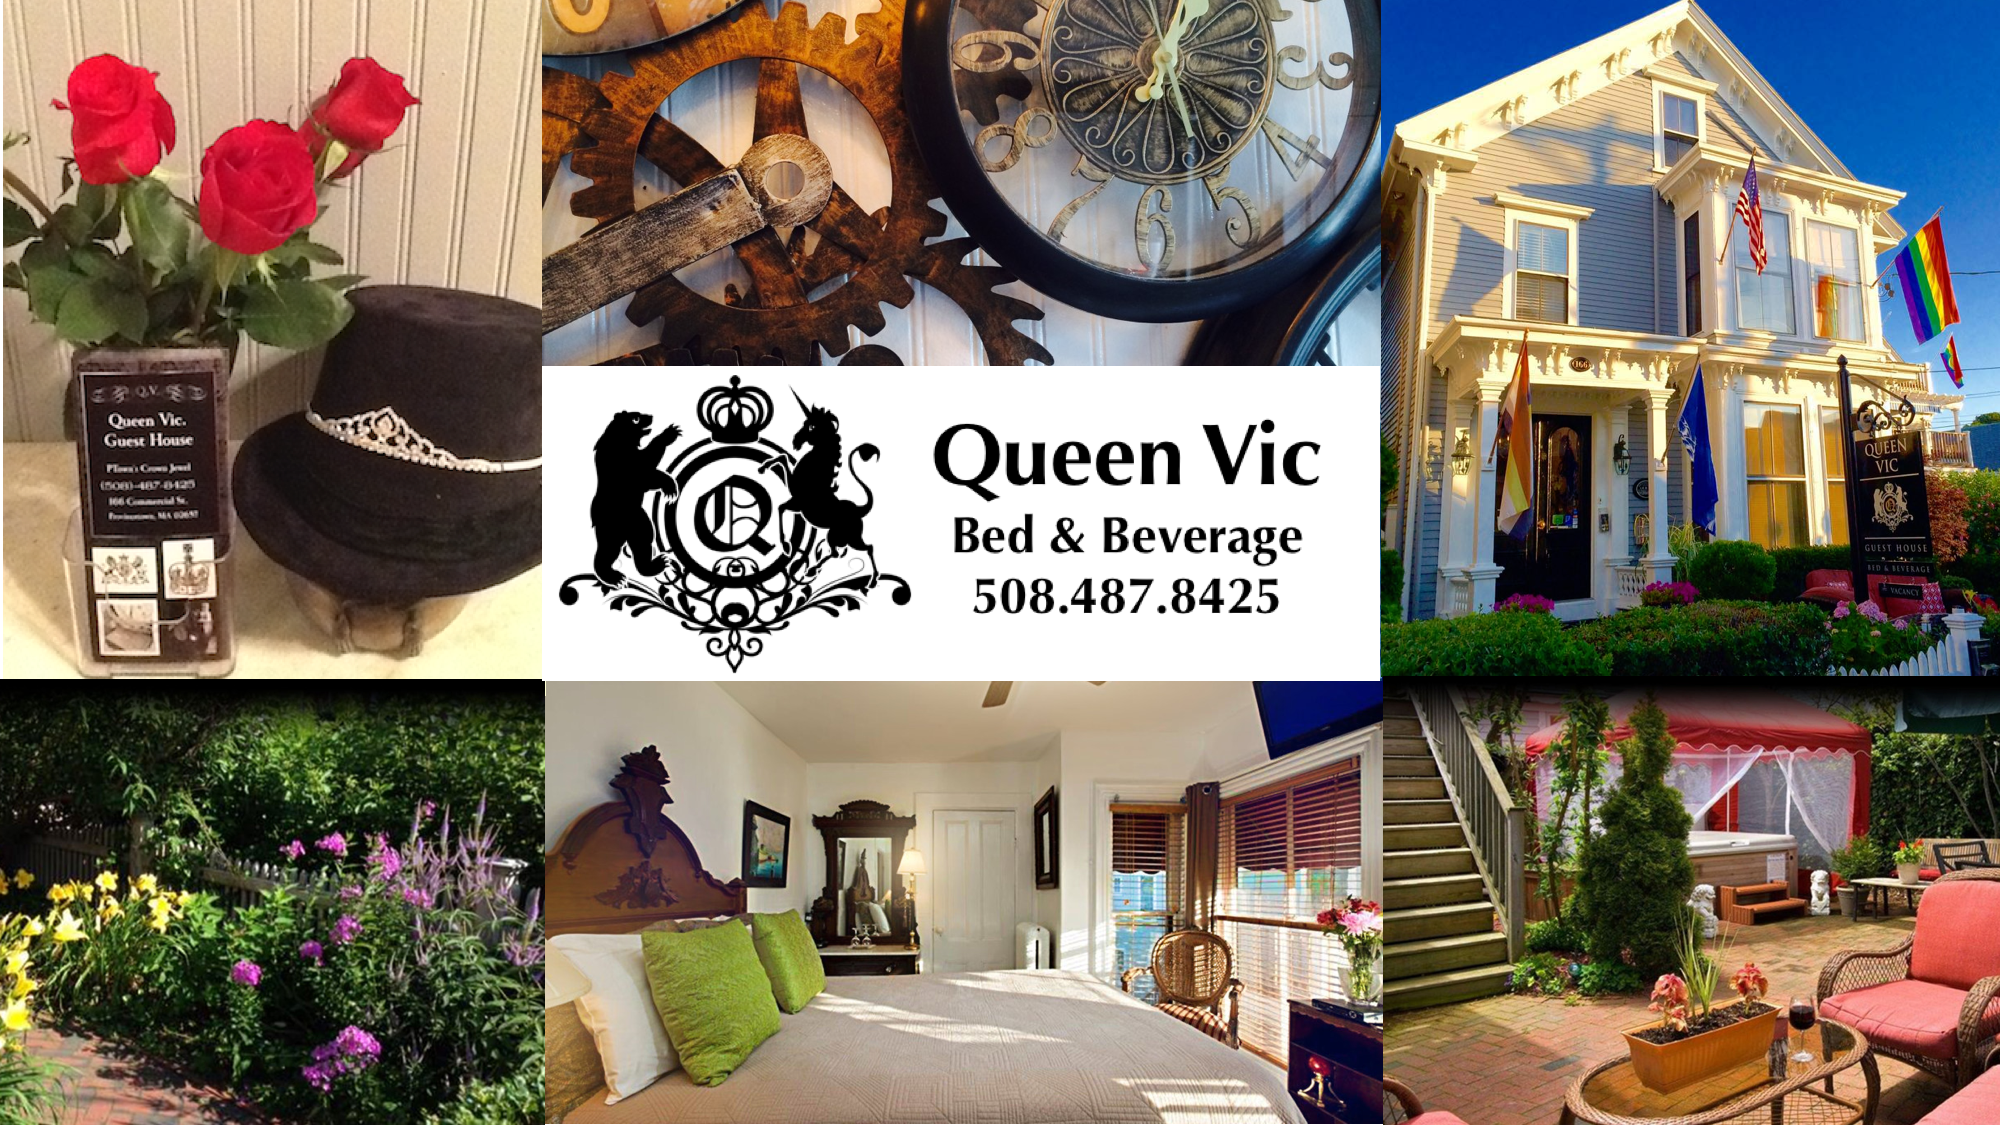 Queen Vic Ptown Image